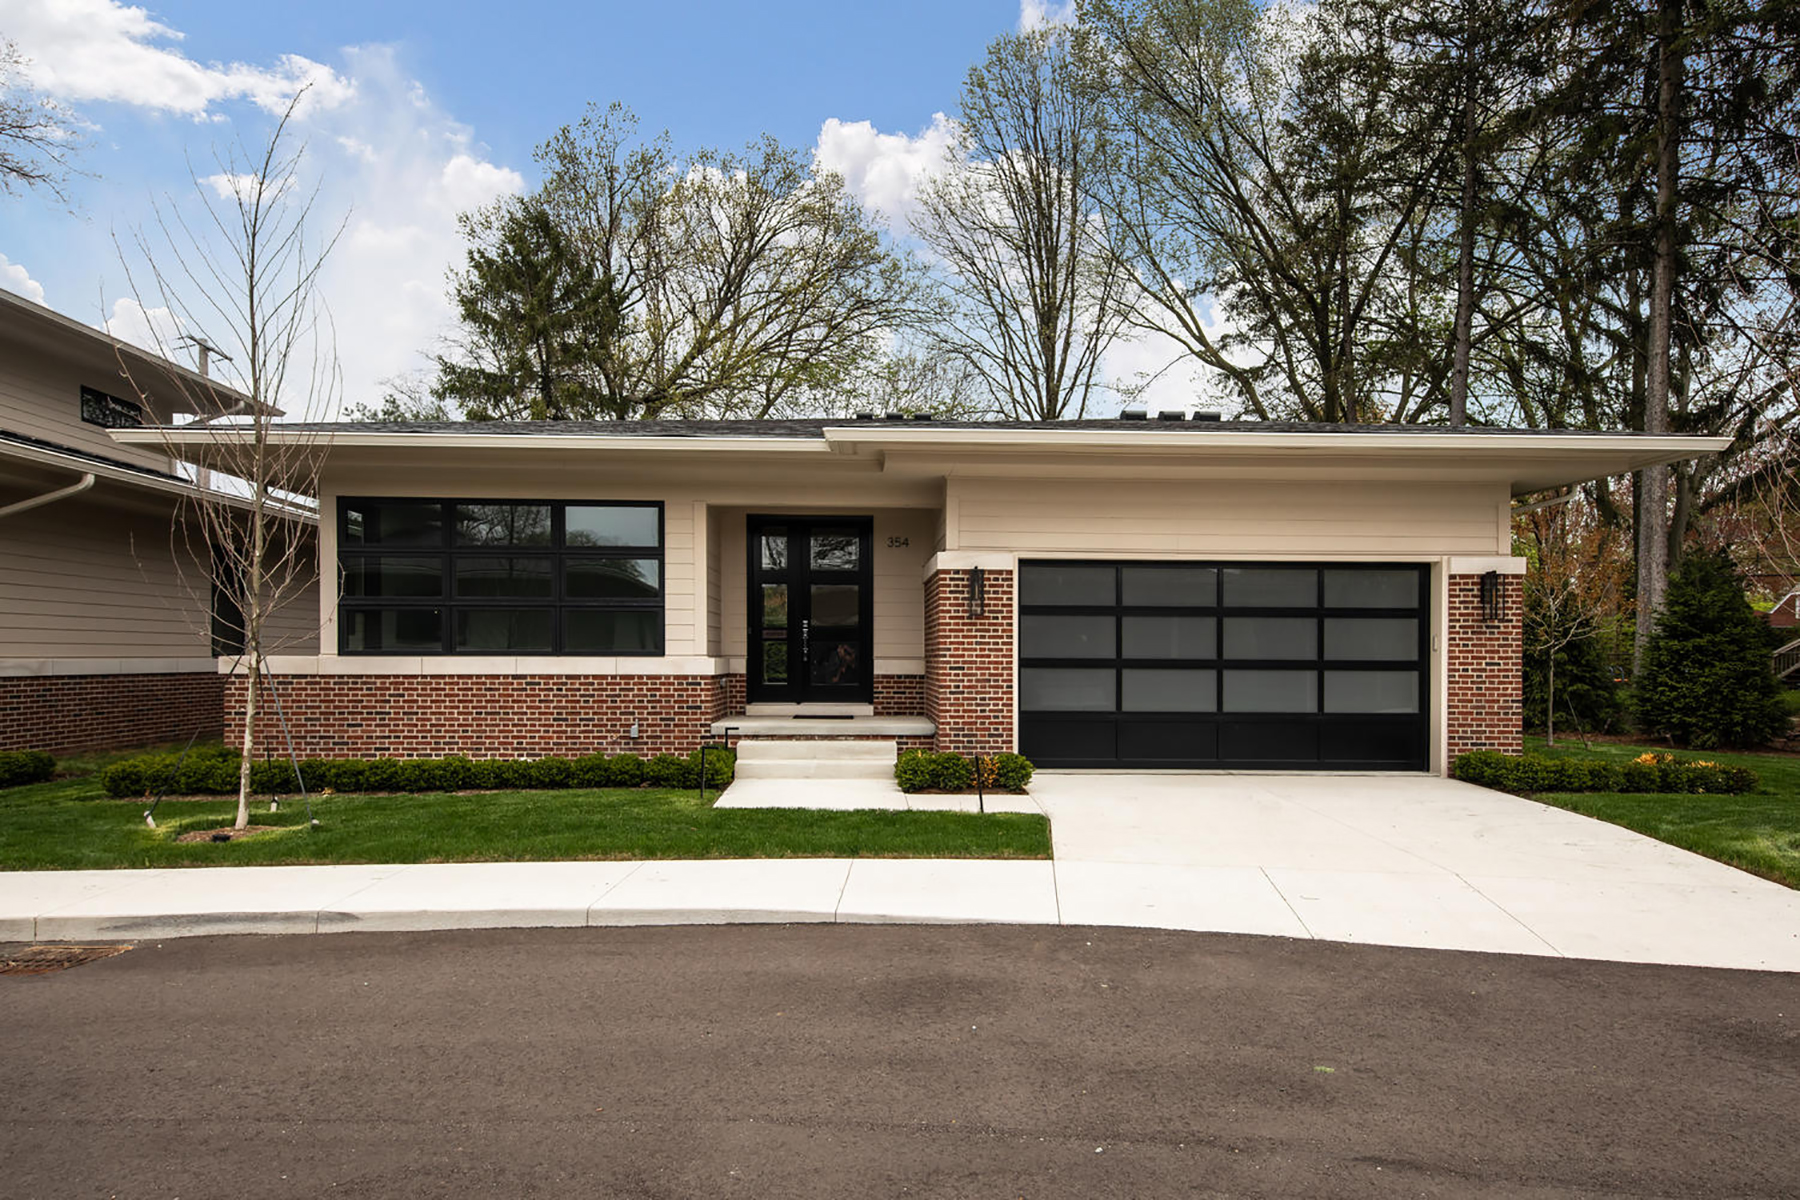 Condominiums for Sale at Grosse Pointe Farms 354 Moselle Place Unit 2 Grosse Pointe Farms, Michigan 48236 United States